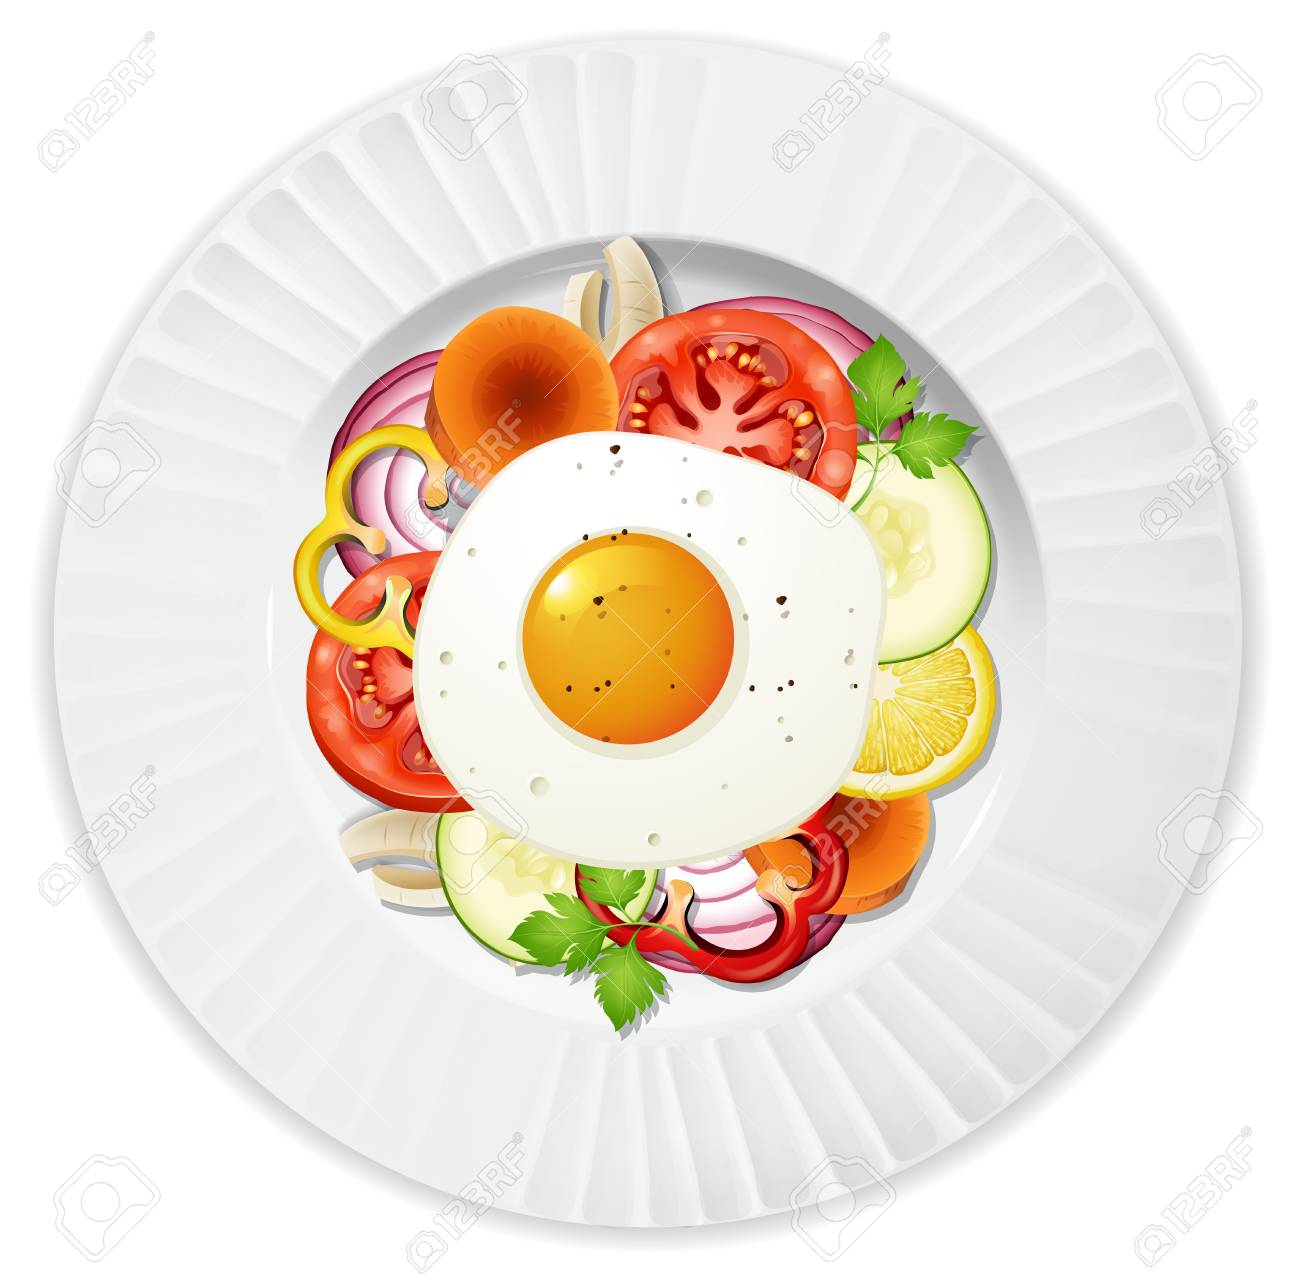 Healthy Egg Salad Top View illustration.